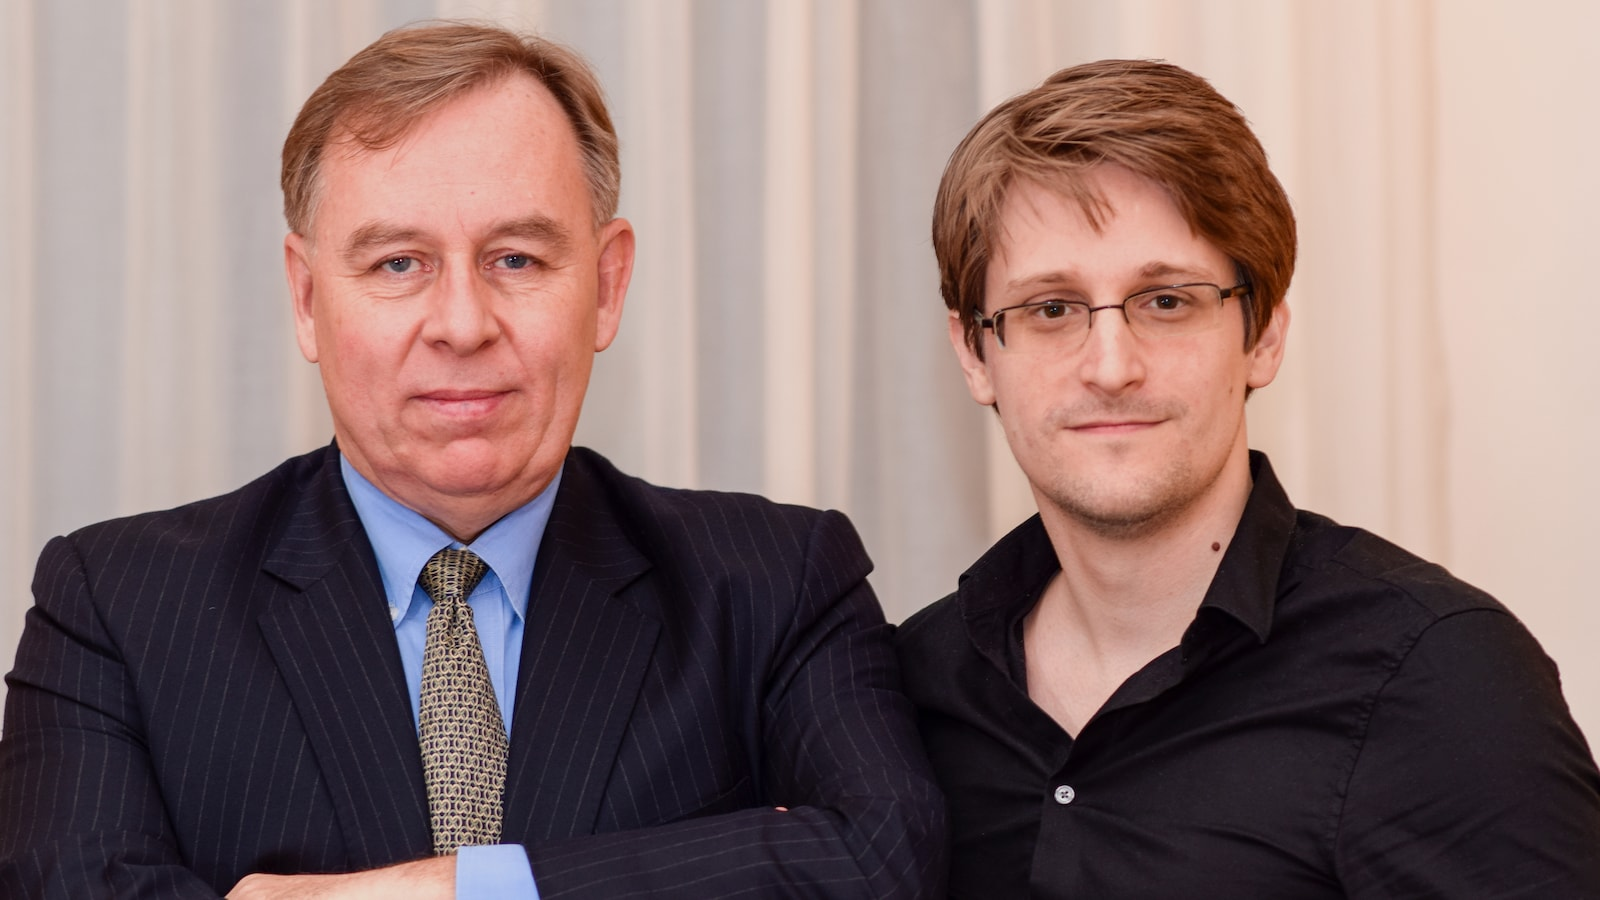 lessons from snowden: his lawyer on whistleblowing and surveillance - March 22, 2019